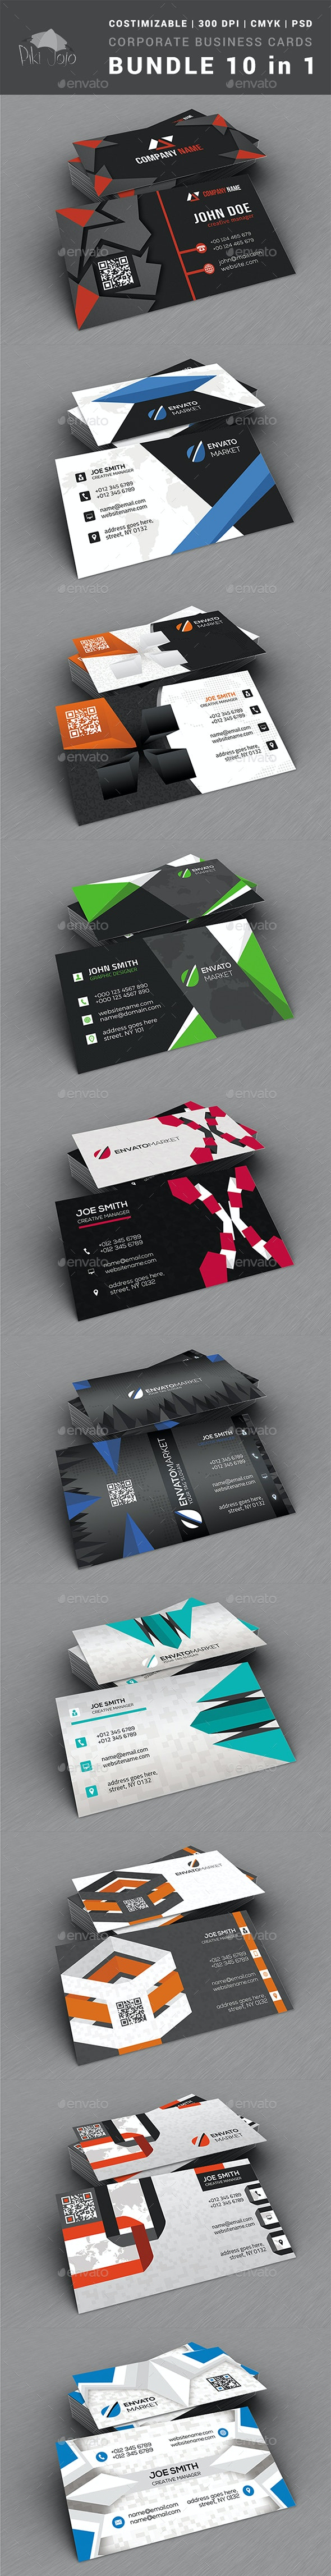 Corporate Business Cards BUNDLE 10 in 1 - Corporate Business Cards